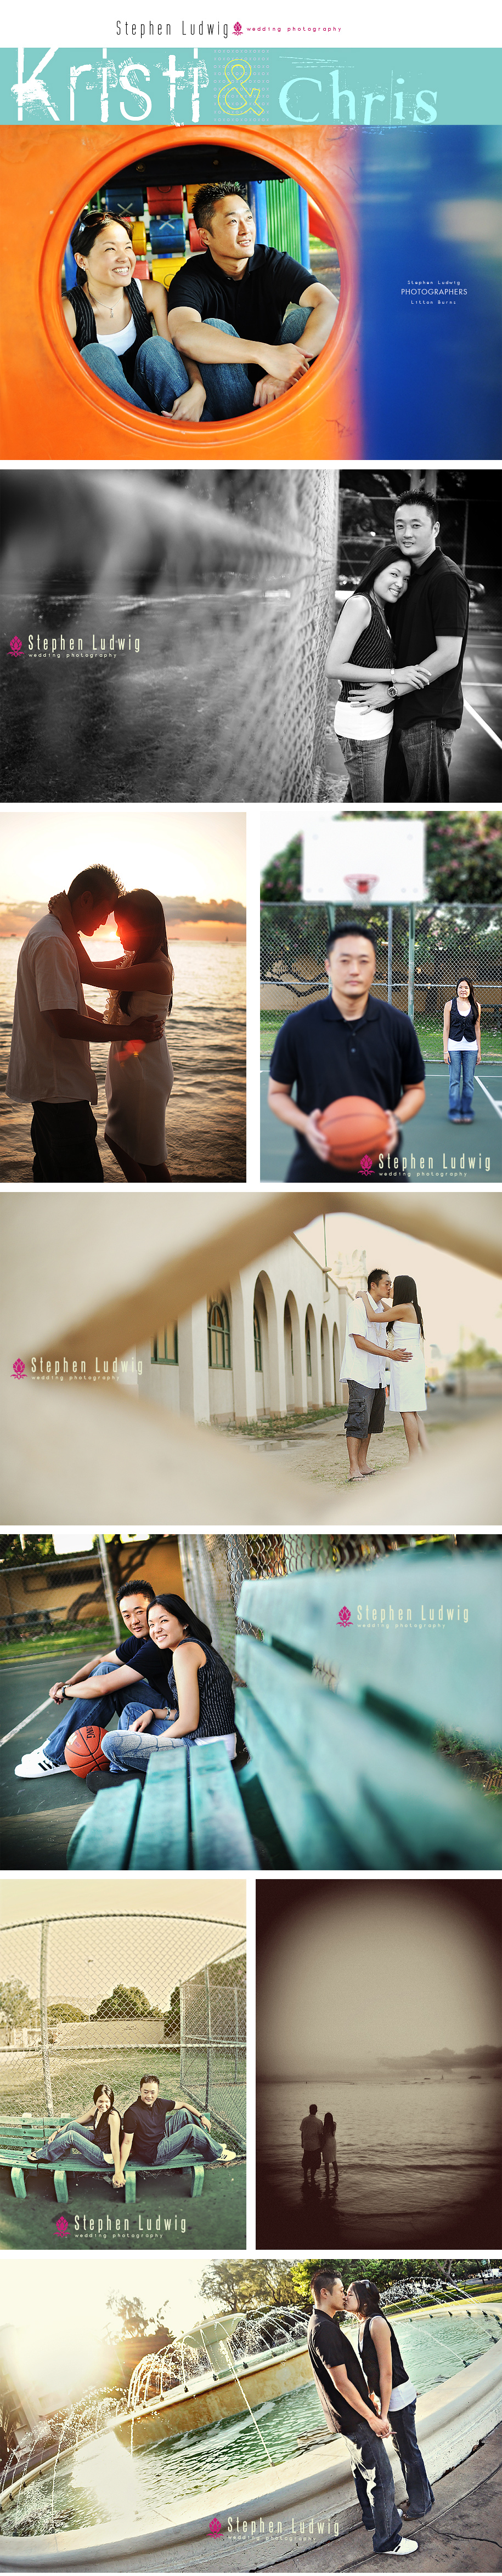 stephen-ludwig-photography-kristi-and-chris-engagement1